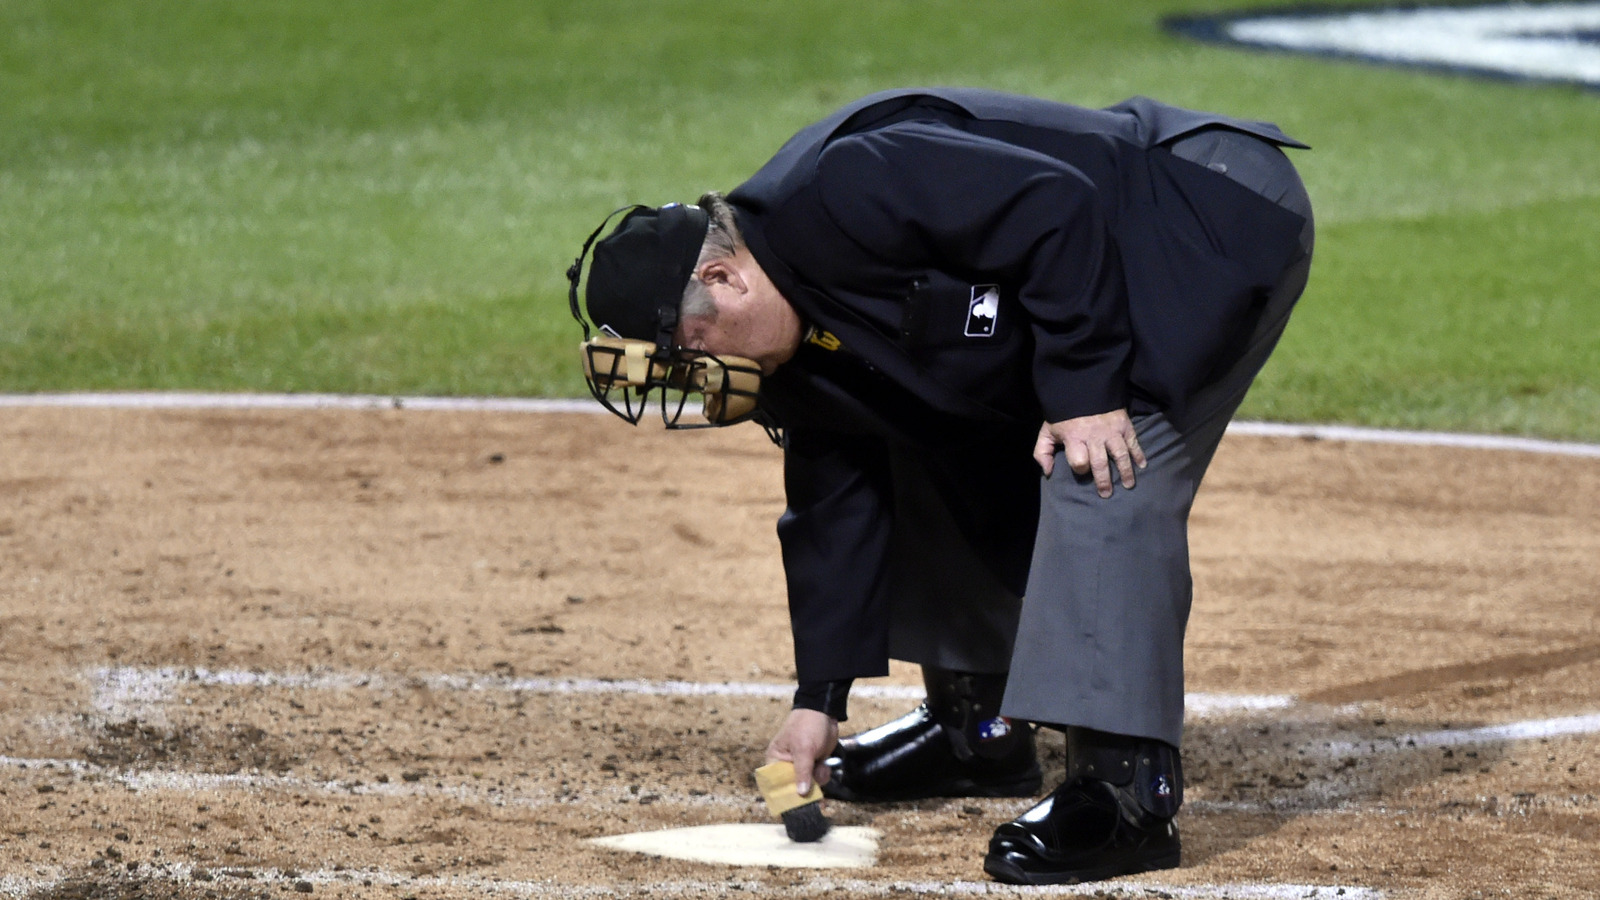 MLB Reportedly Might Test Potential Game-Changing Rule For Extra Innings